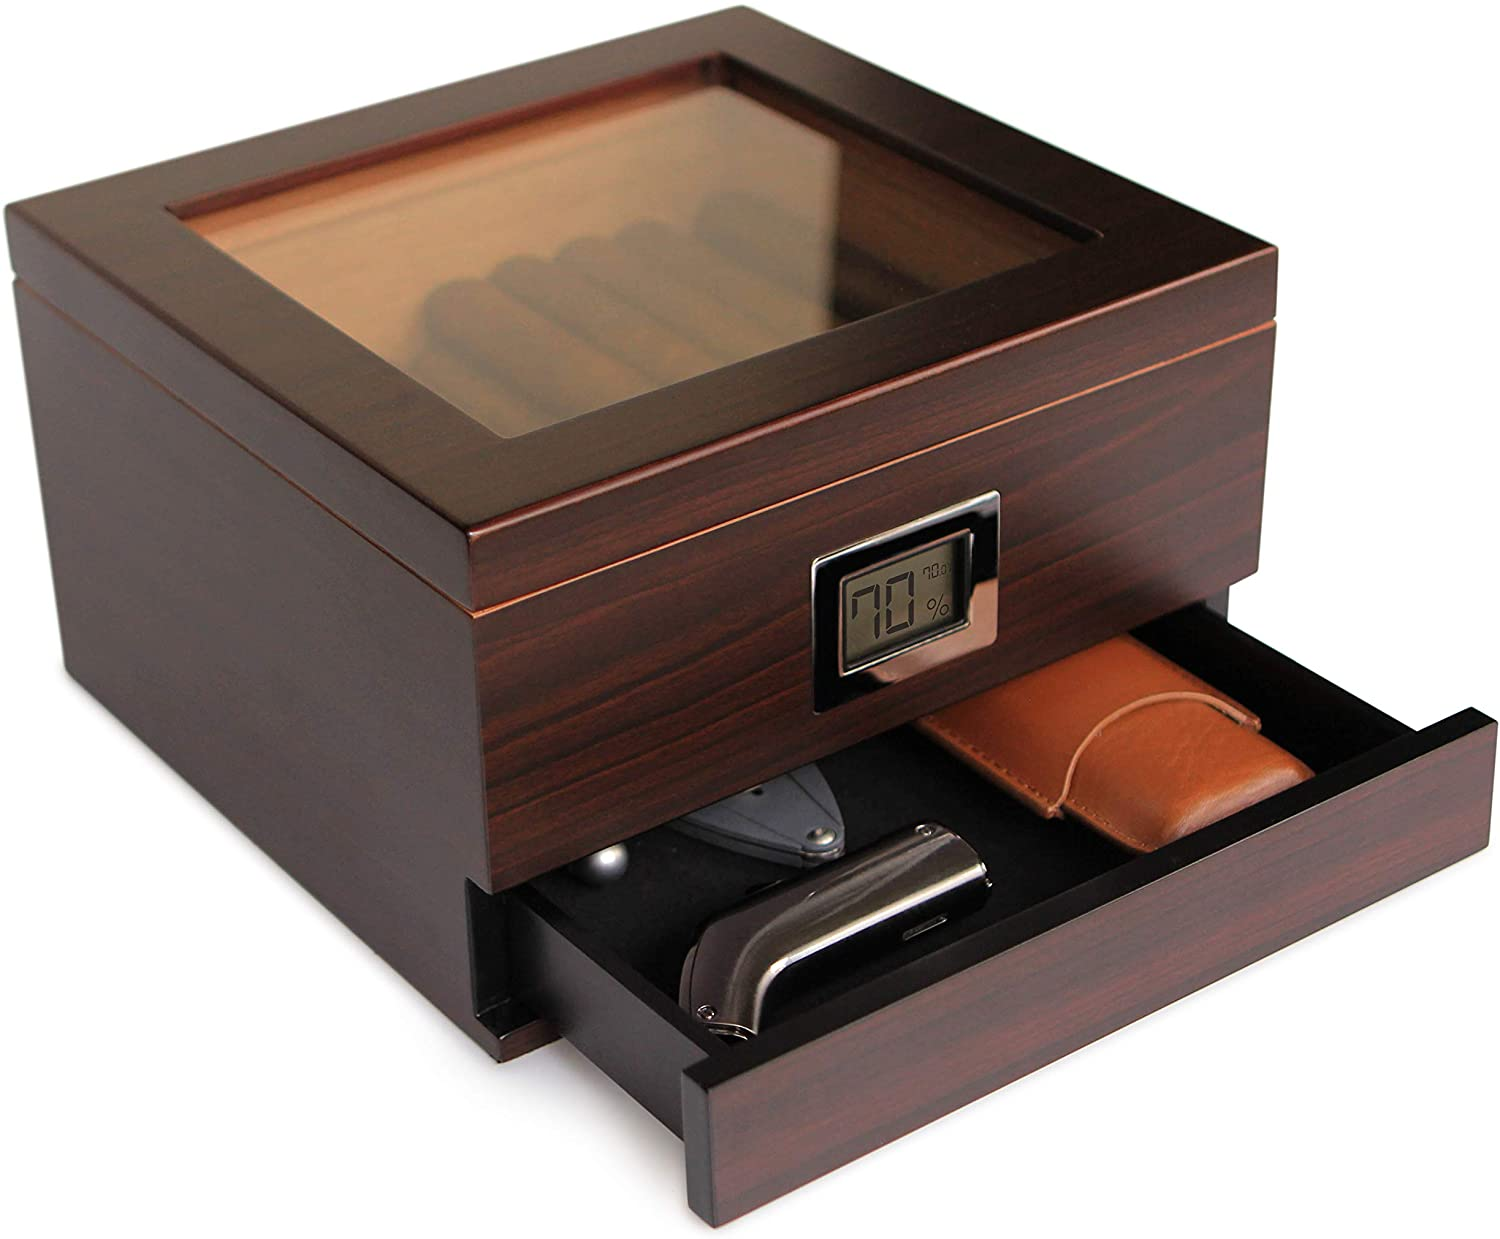 Case Elegance glass-topped humidor